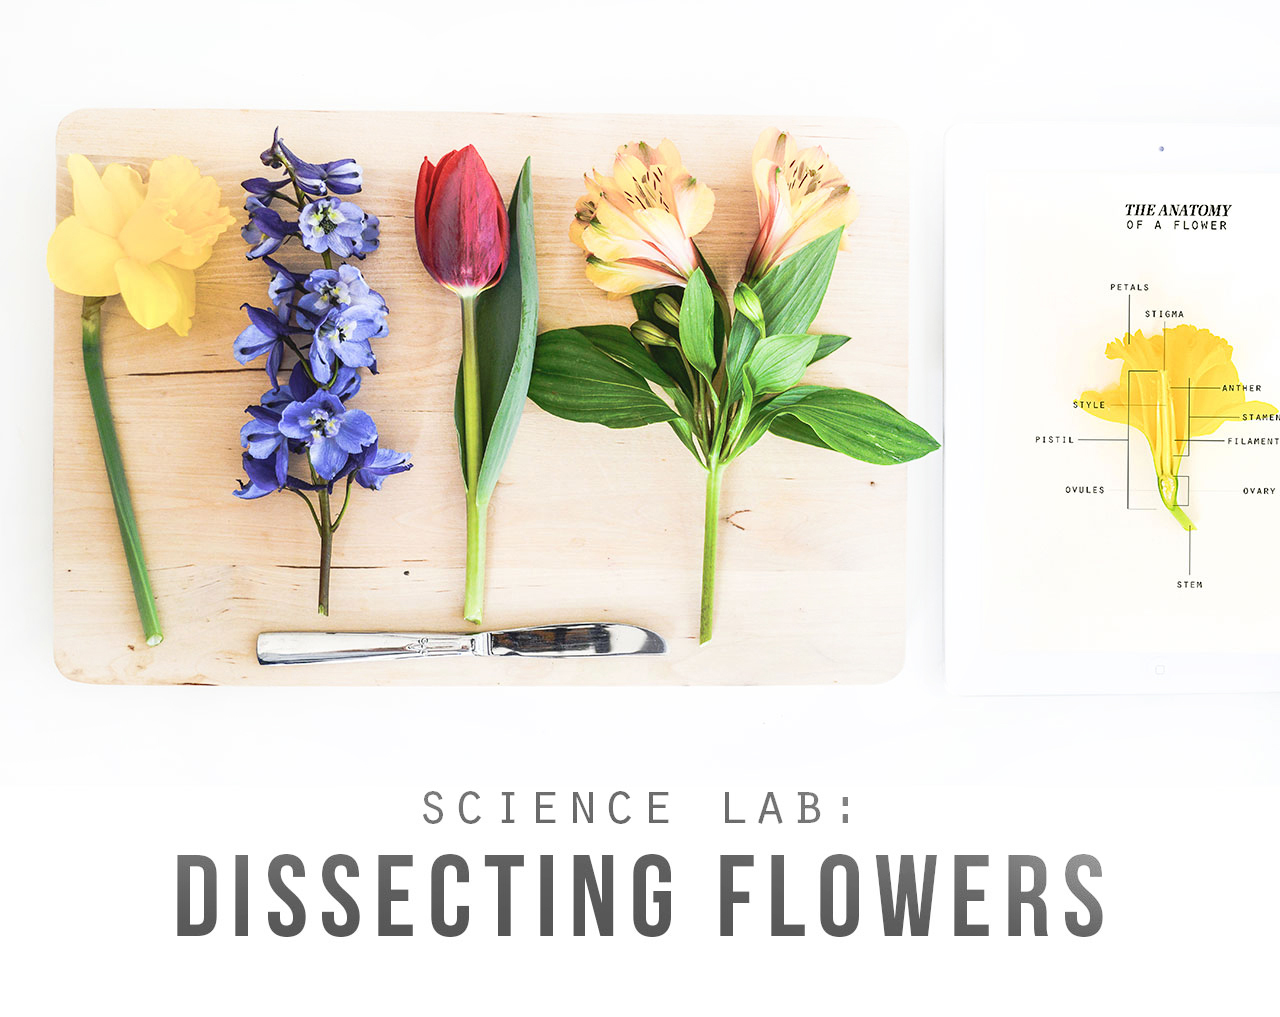 Science Lab Dissecting Flowers